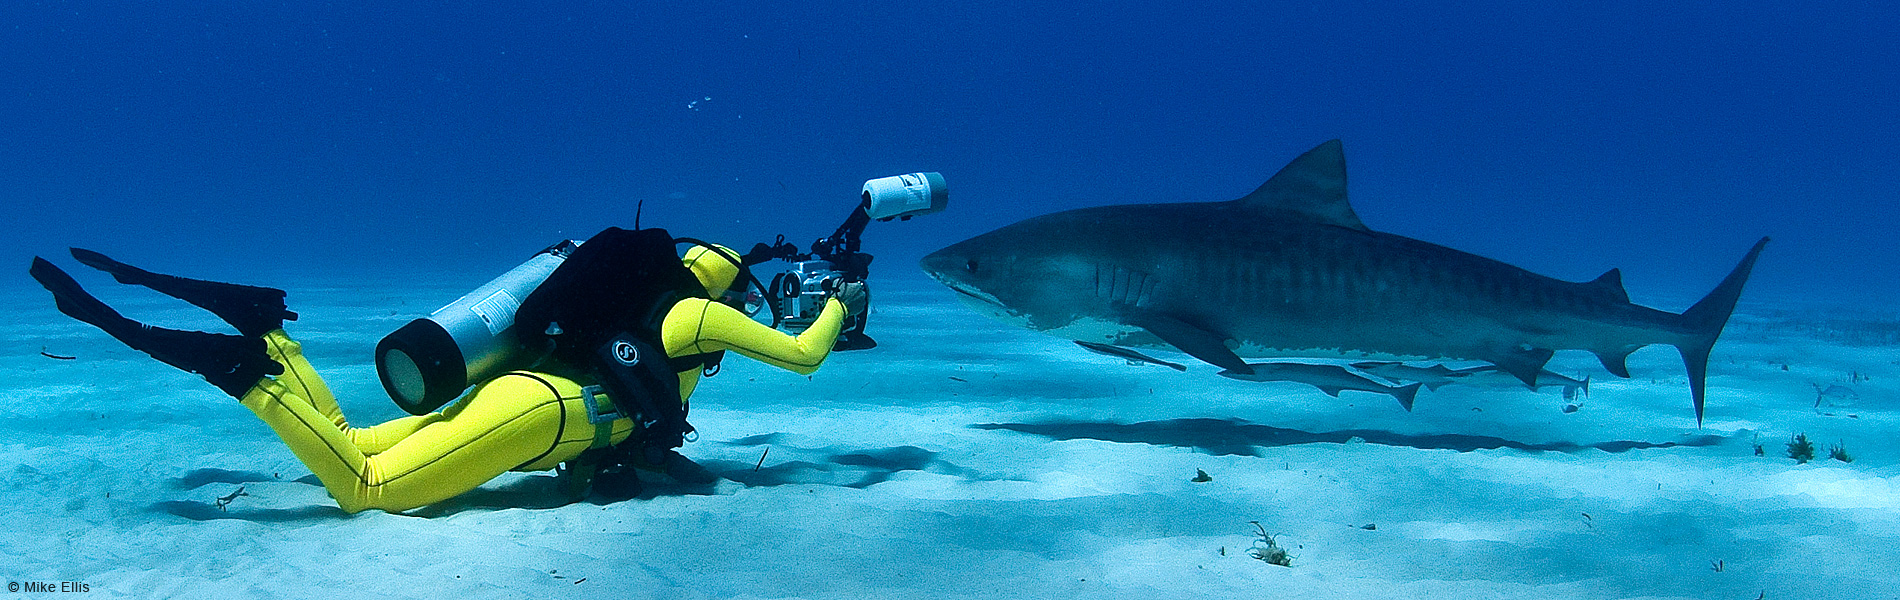 Lesley Rochat Shark Conservationist